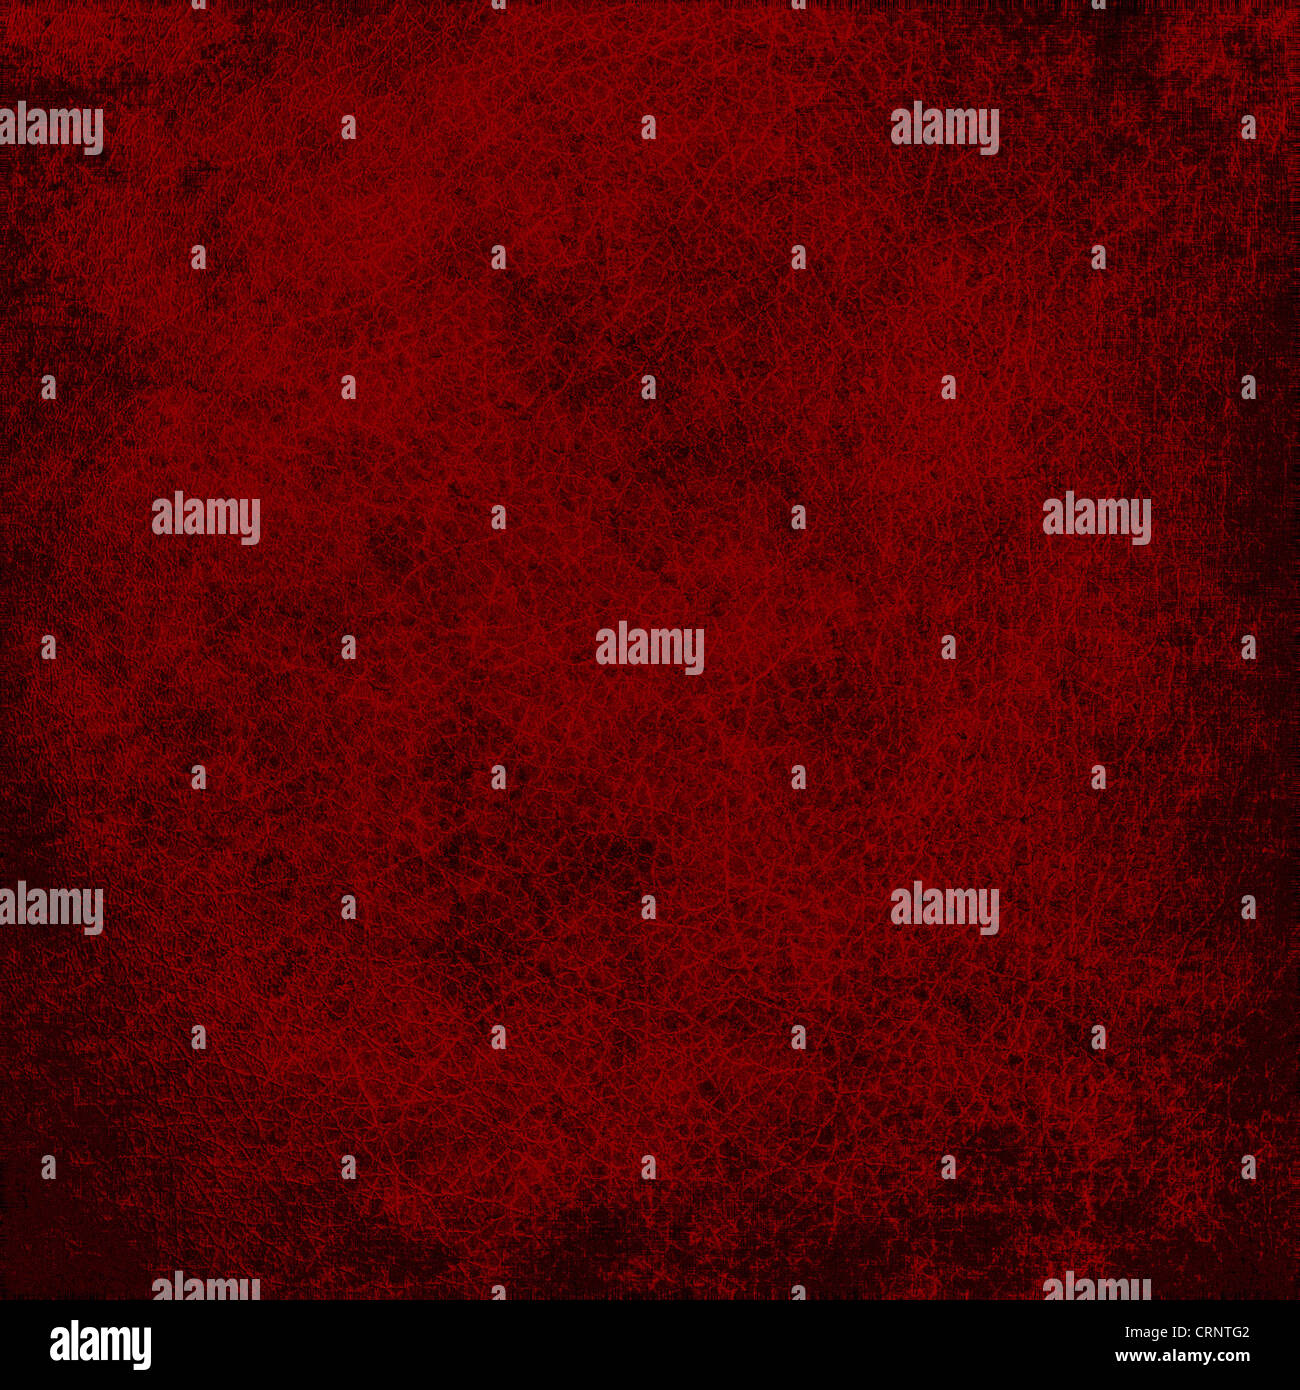 grunge background or texture in red wine color Stock Photo ...